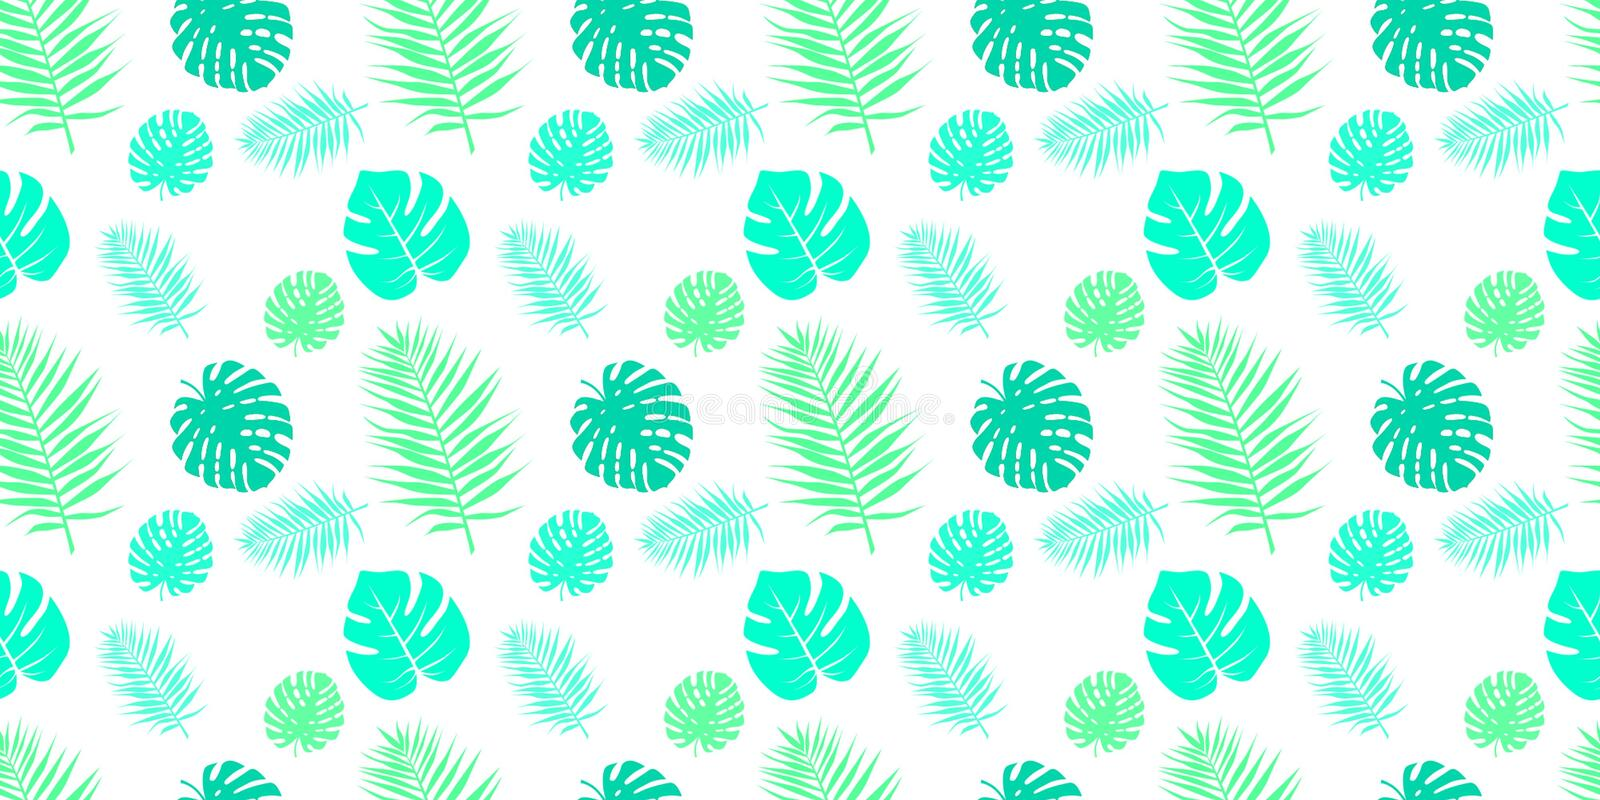 Seamless patterns with fabric texture. Tropical leaves on a white background. stock illustration